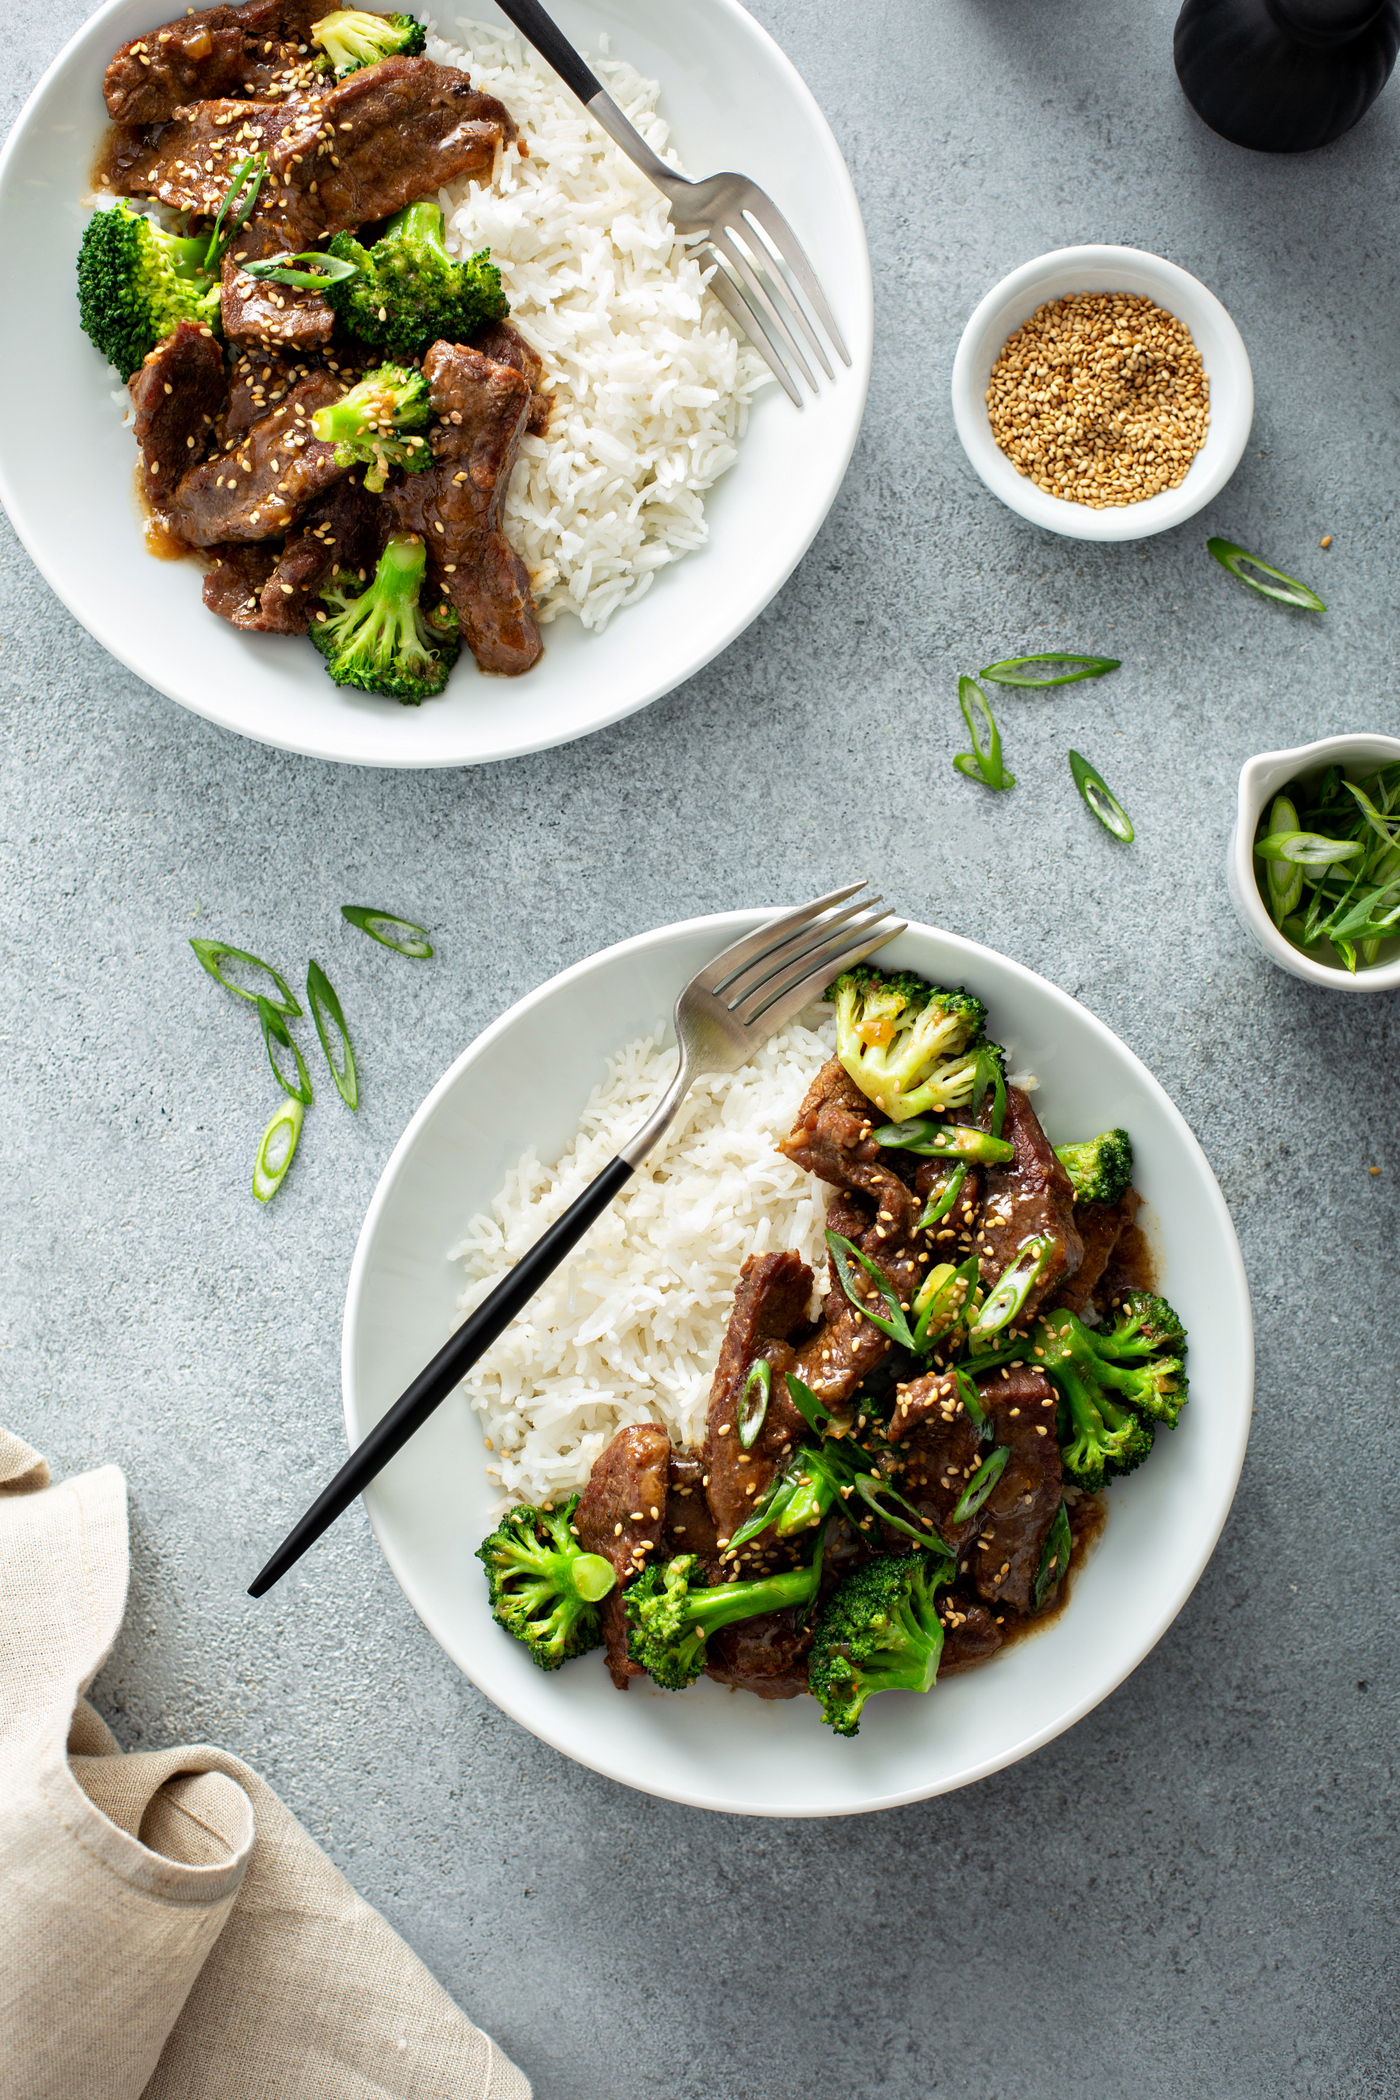 A photo of two bowls of beef and broccoli with a side of white rice.